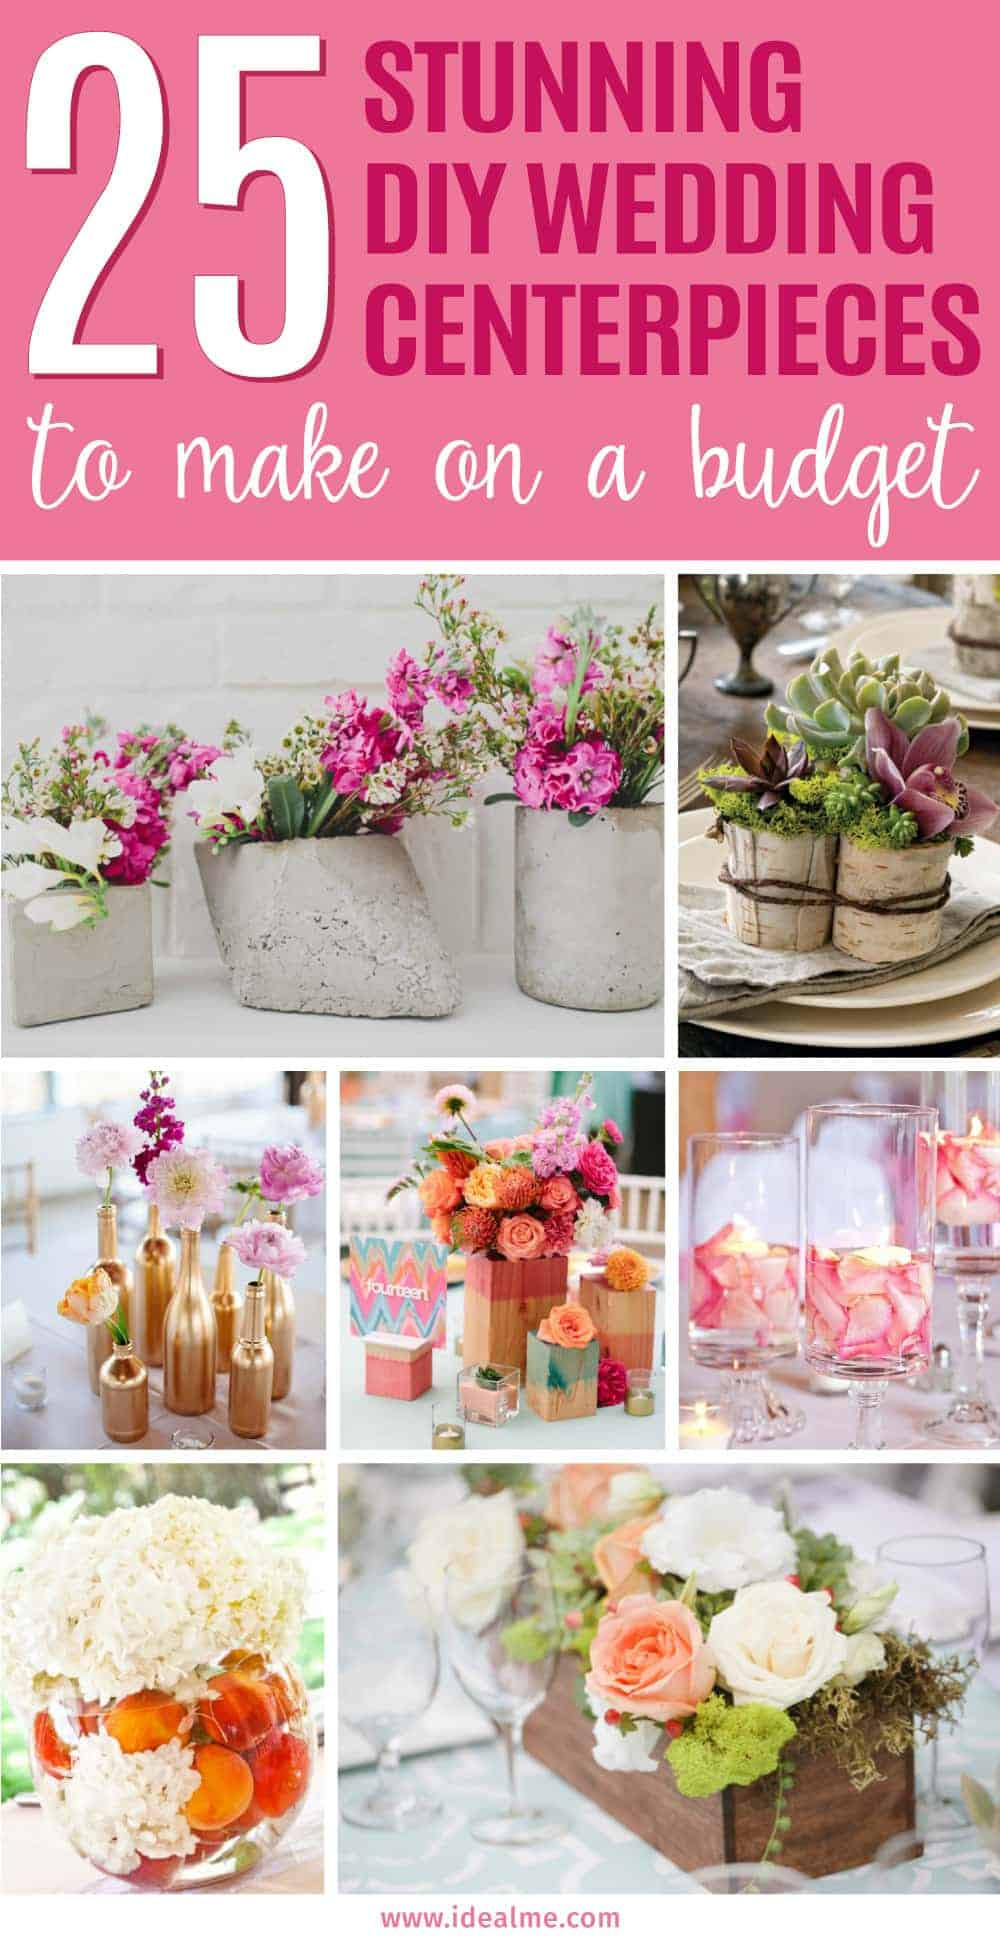 Best ideas about Wedding Centerpieces Ideas DIY . Save or Pin 25 Stunning DIY Wedding Centerpieces to Make on a Bud Now.